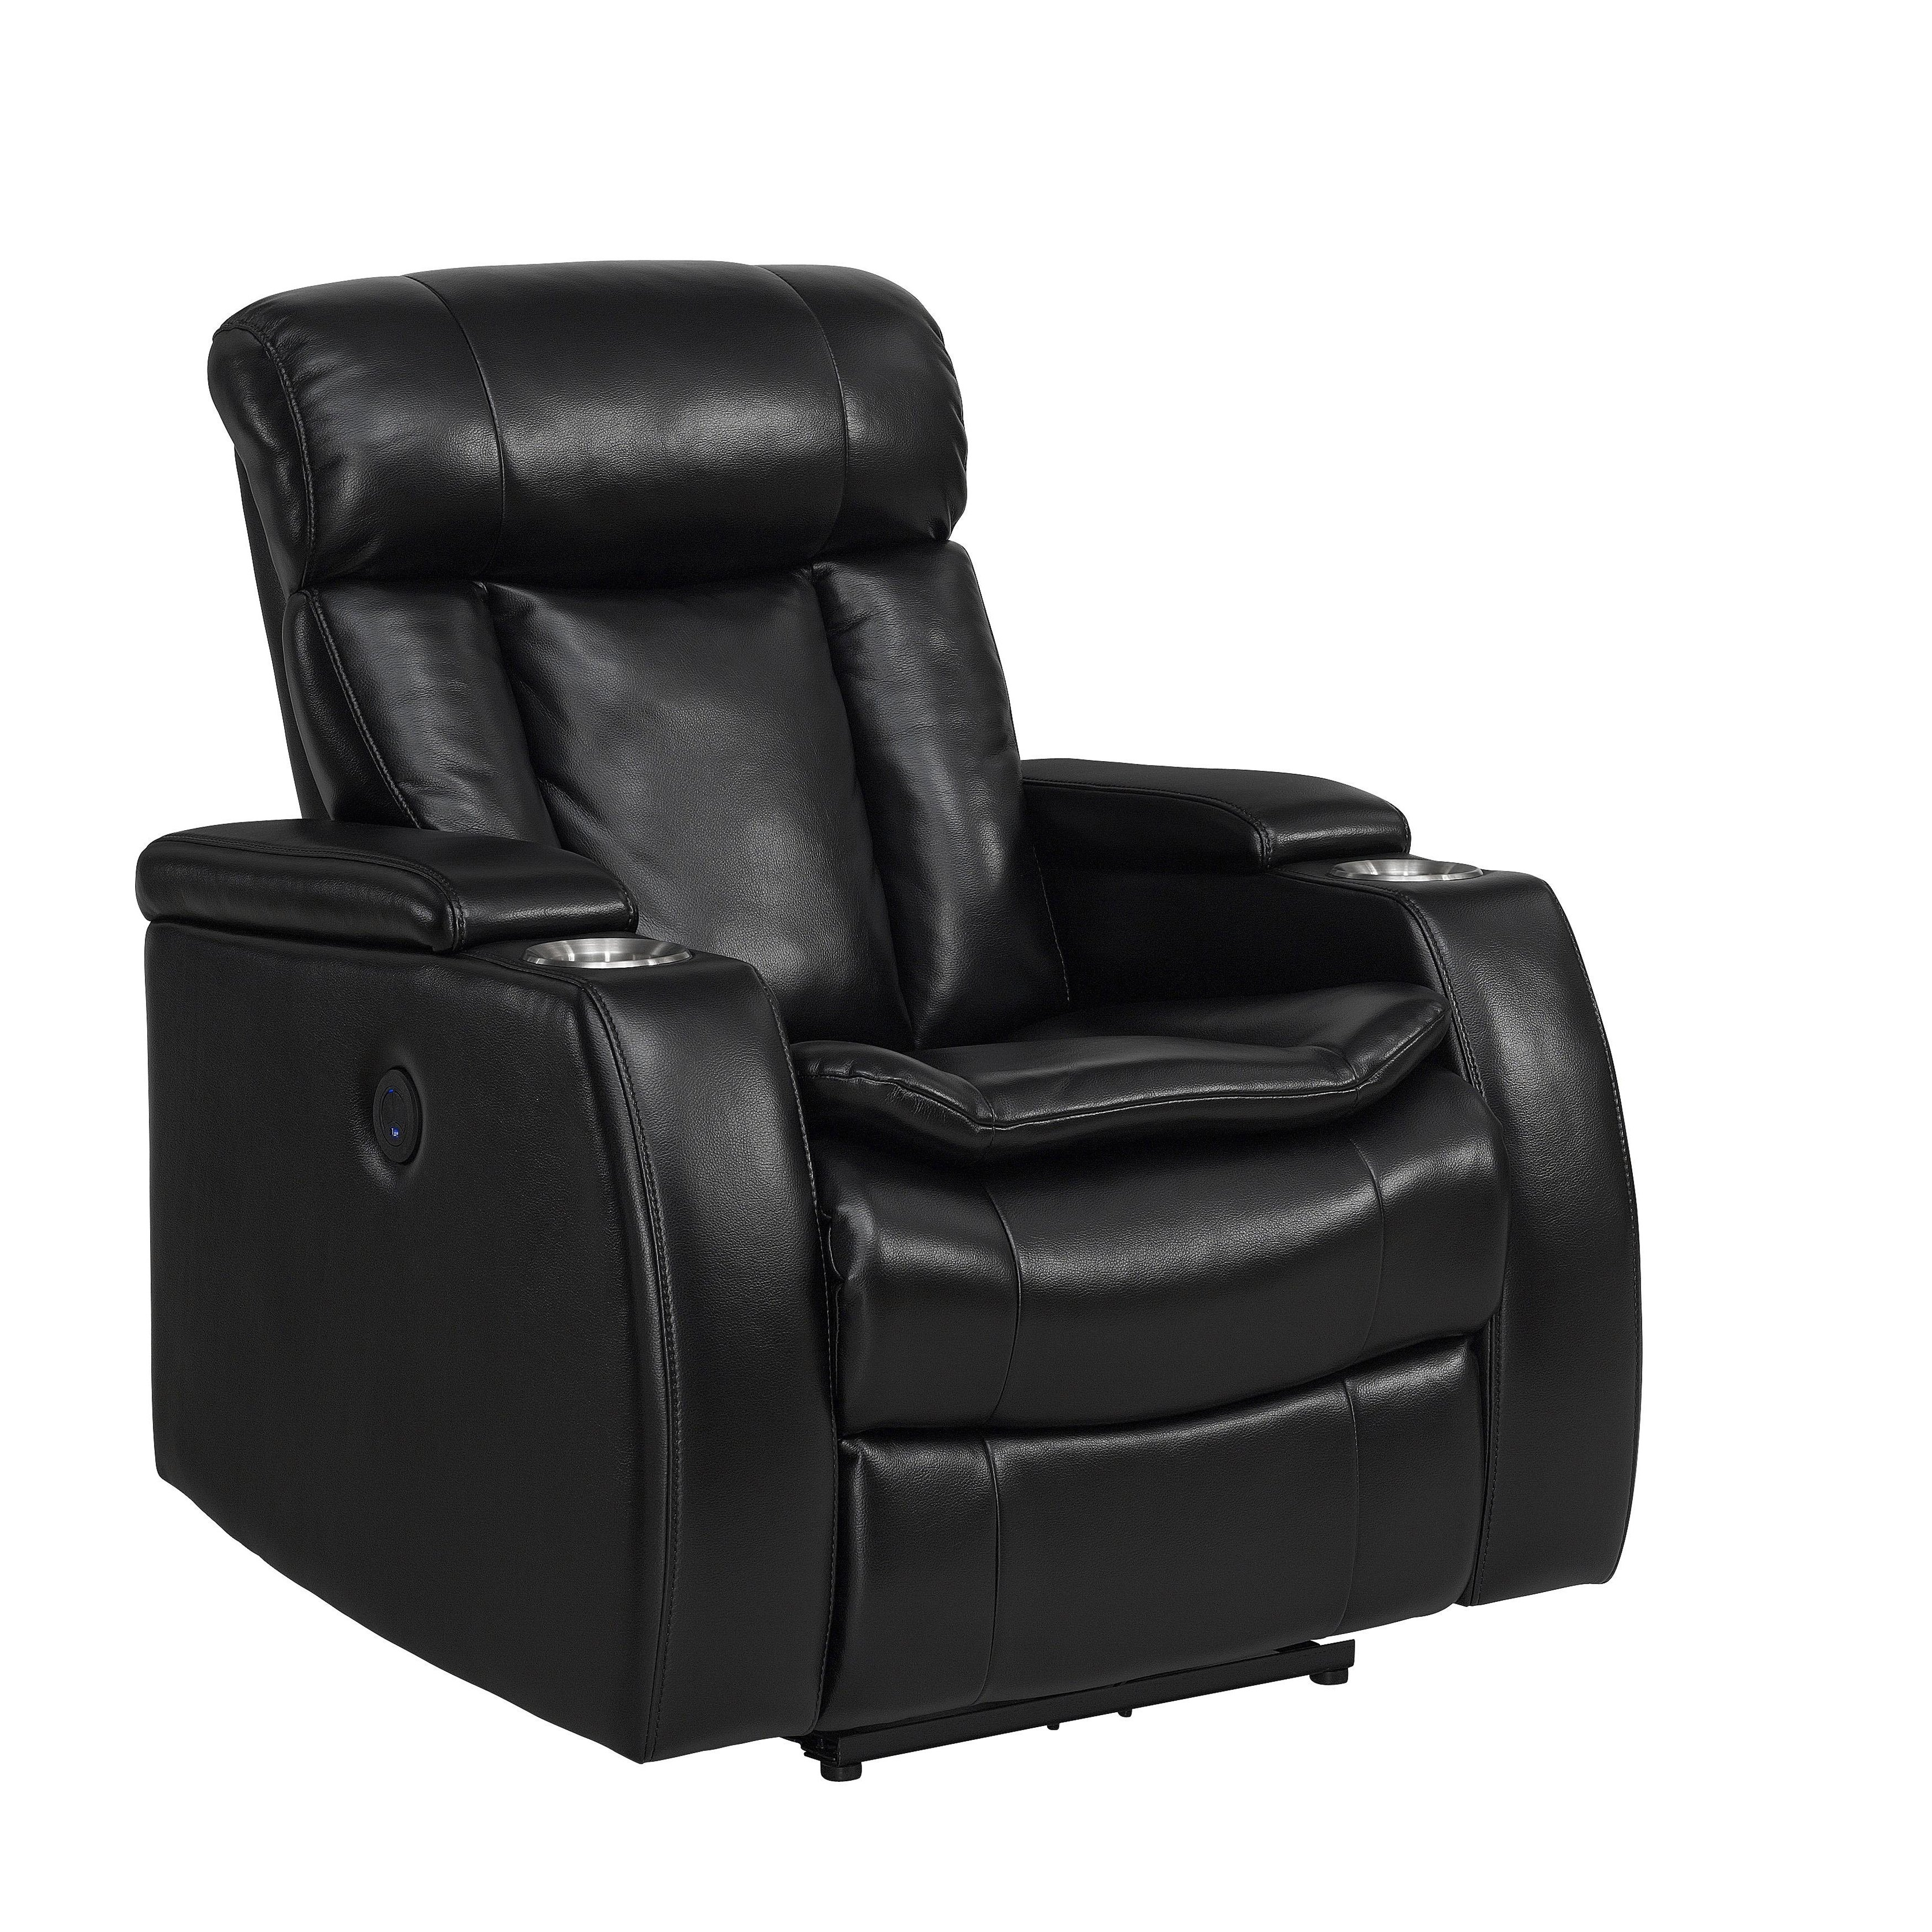 Power Recliner Chairs (View 27 of 30)